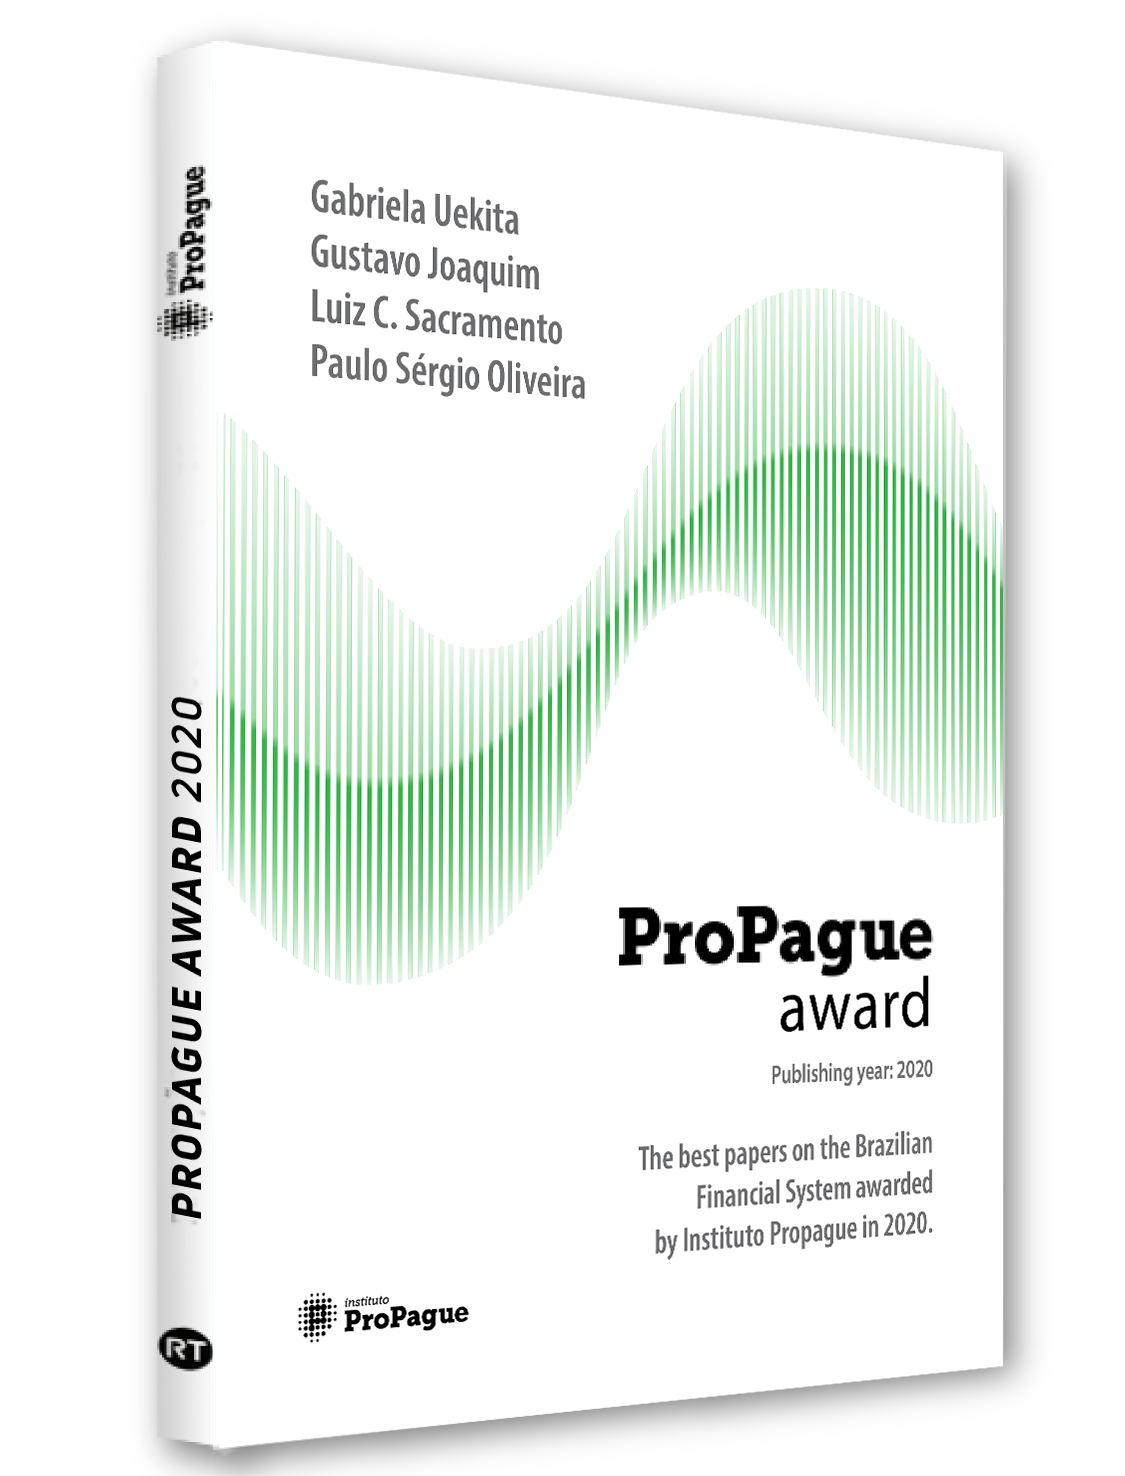 Free Ebook: Propague Award 2020